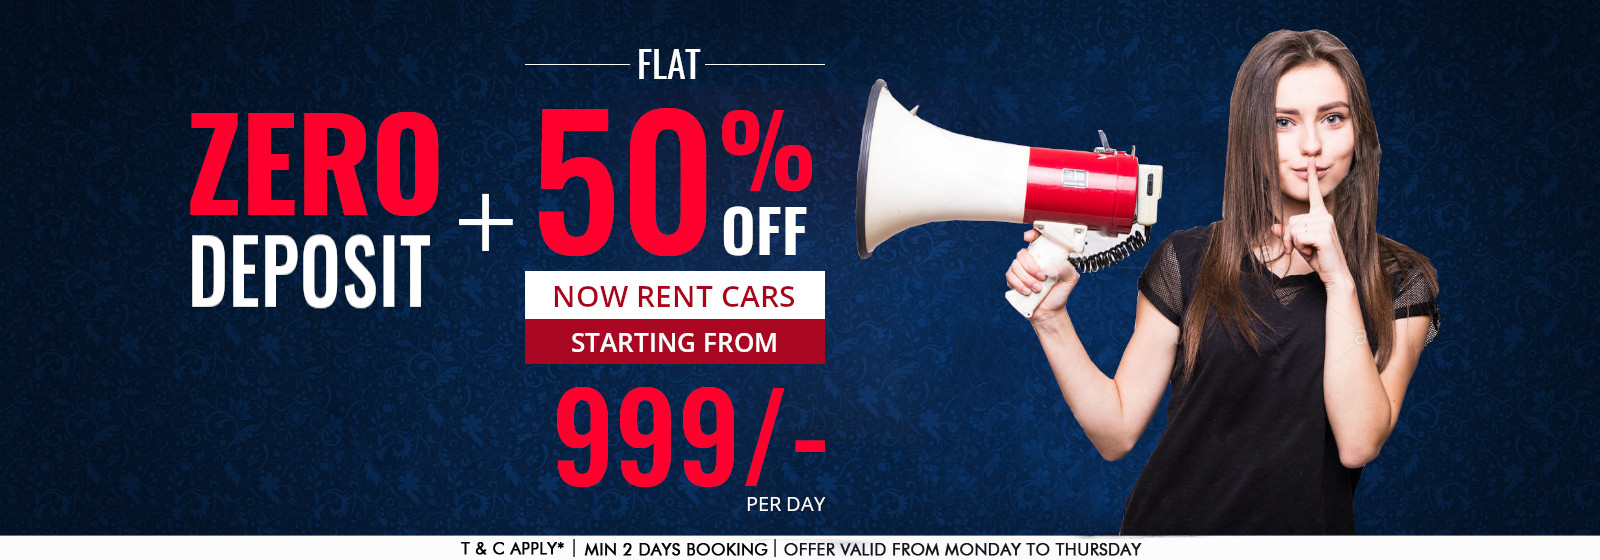 selfdrive.in : Daily rental starting from 999/-